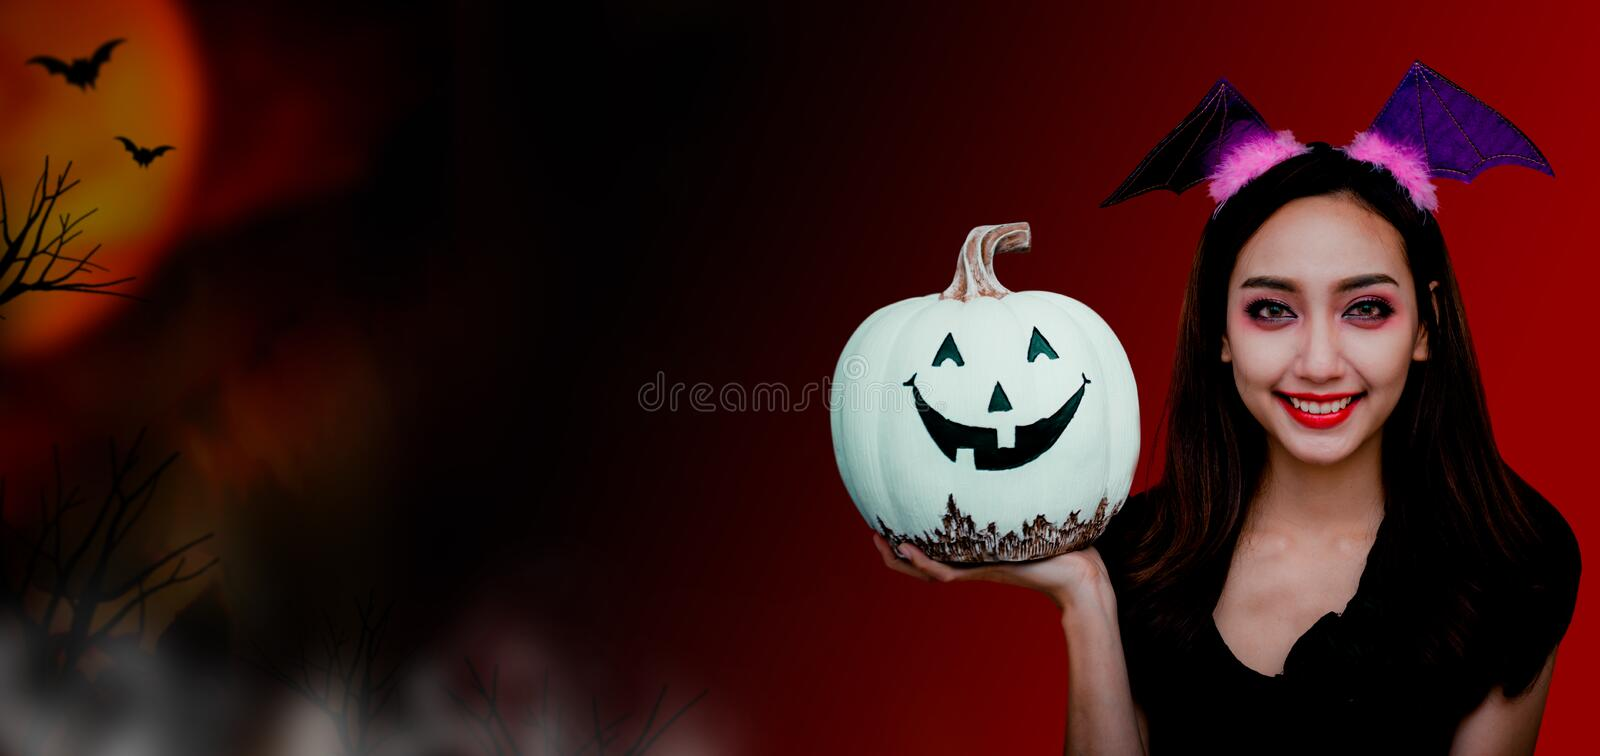 Happy Halloween concept. Happy Halloween. Beautiful woman costume and holding white pumpkin. Copy space on dark background royalty free stock photos